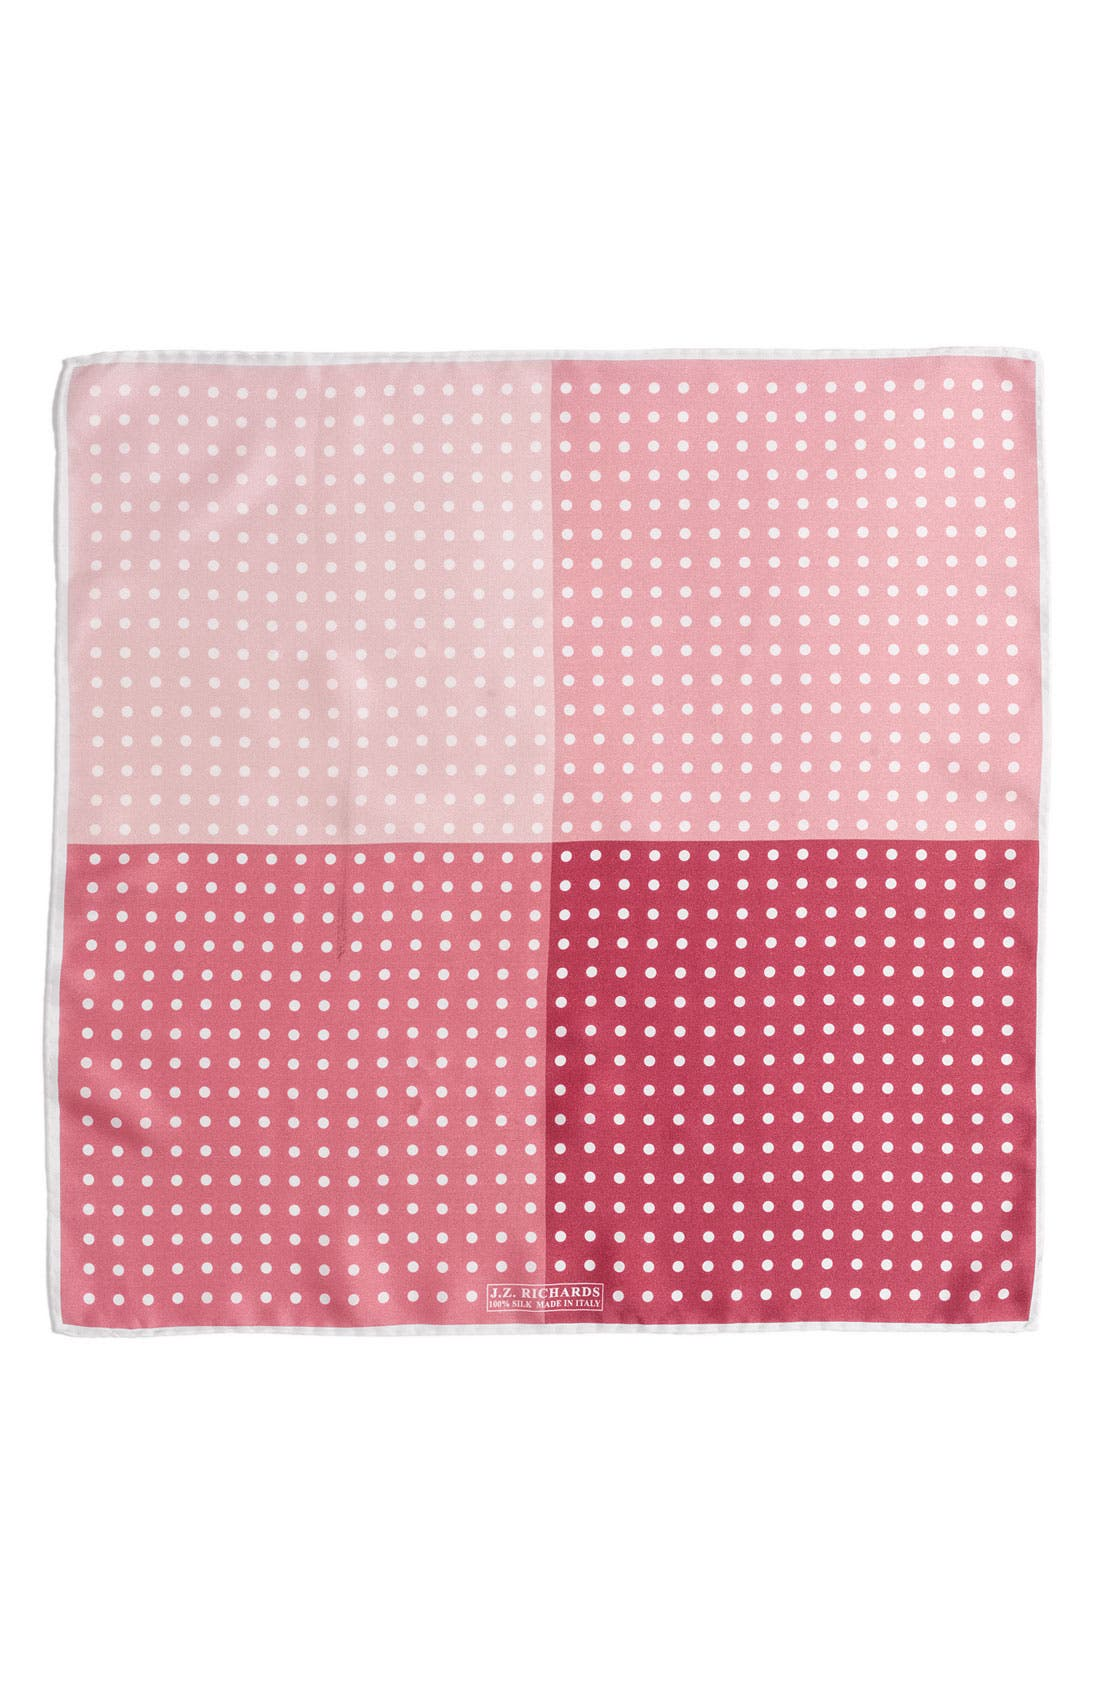 Main Image - J.Z. Richards Polka Dot Pocket Square